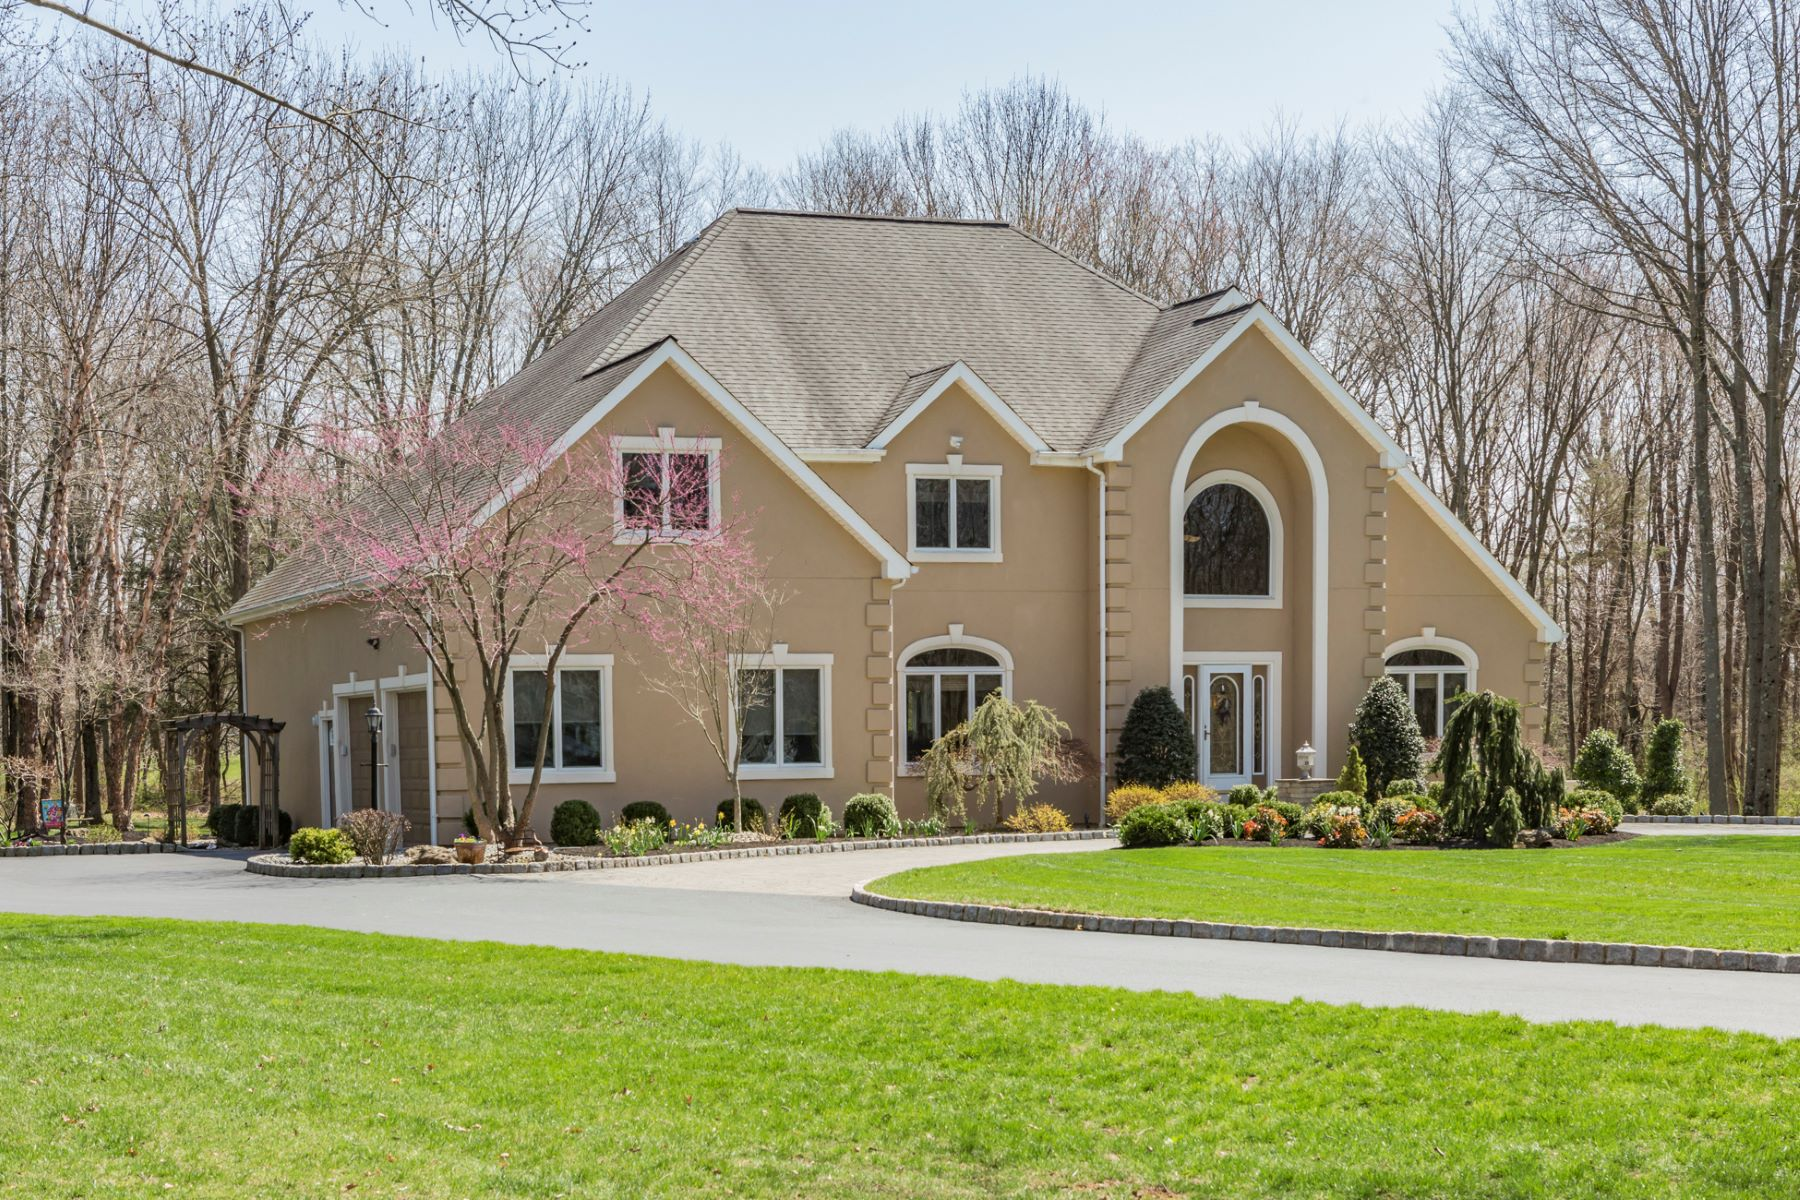 Single Family Home for Sale at A Custom Home With All The Amenities - Montgomery Township 21 Woodward Drive Belle Mead, New Jersey 08502 United States